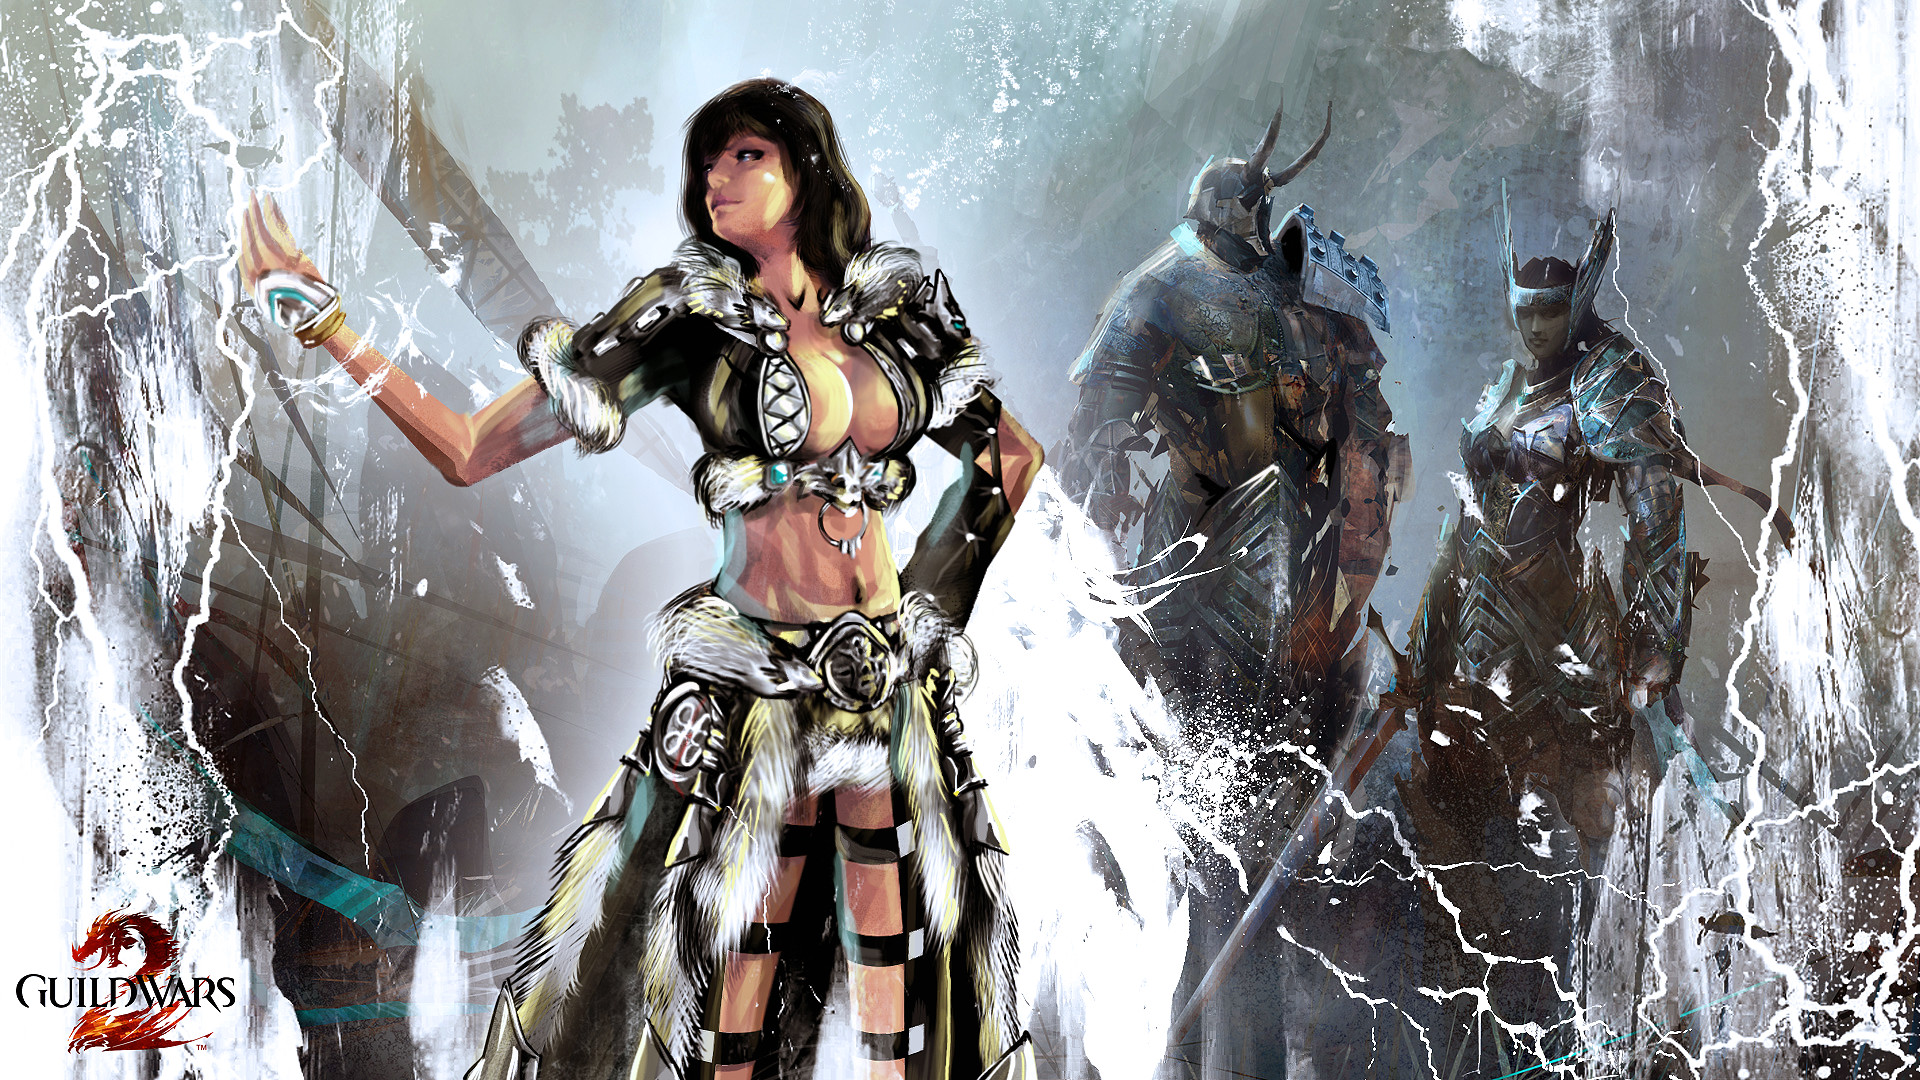 1920x1080 Wallpapers Of The Day: Guild Wars 2 |  px Guild Wars 2 Backgrounds